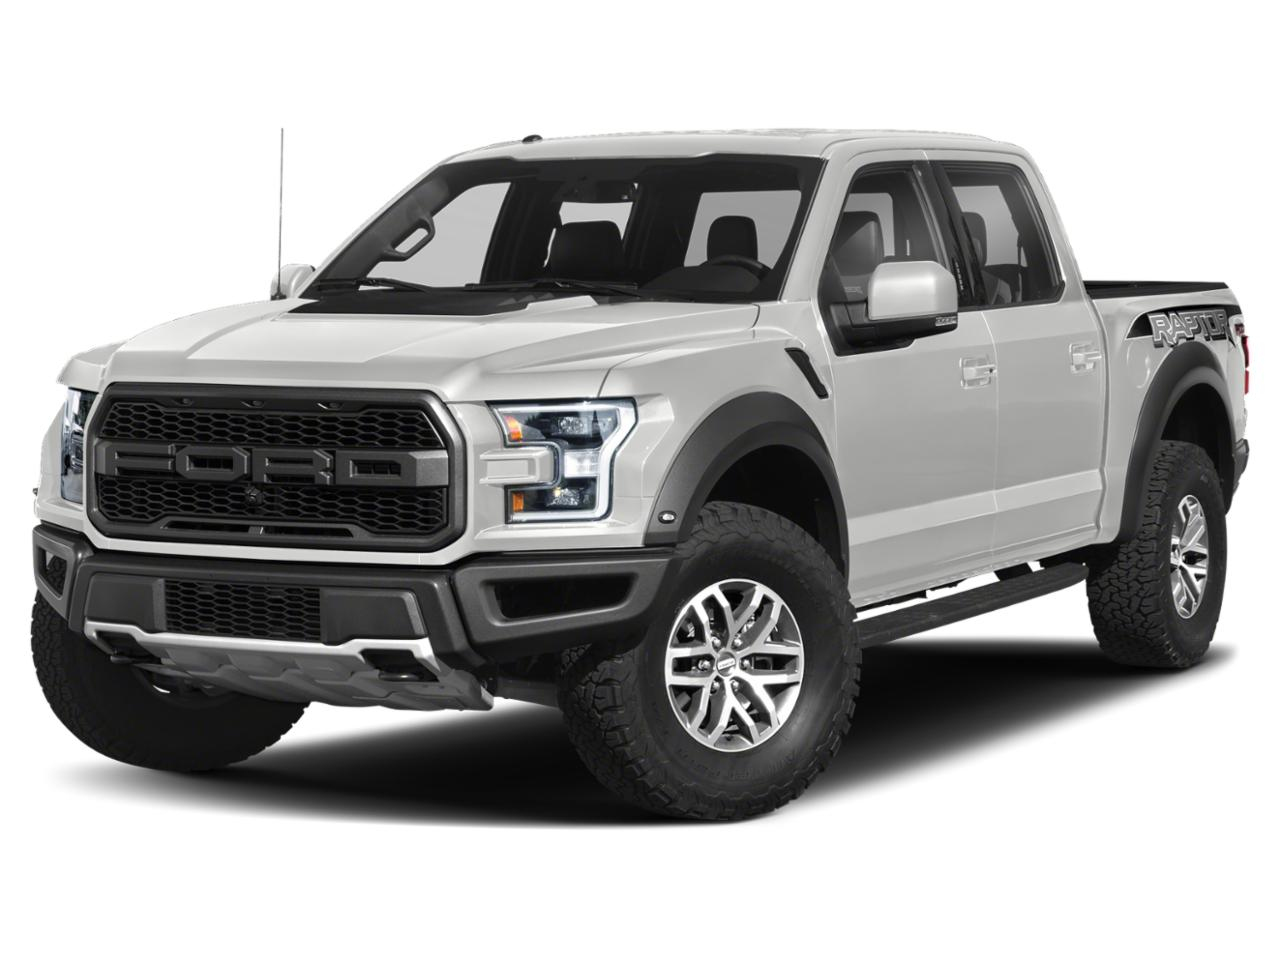 2018 Ford F-150 Vehicle Photo in Streetsboro, OH 44241